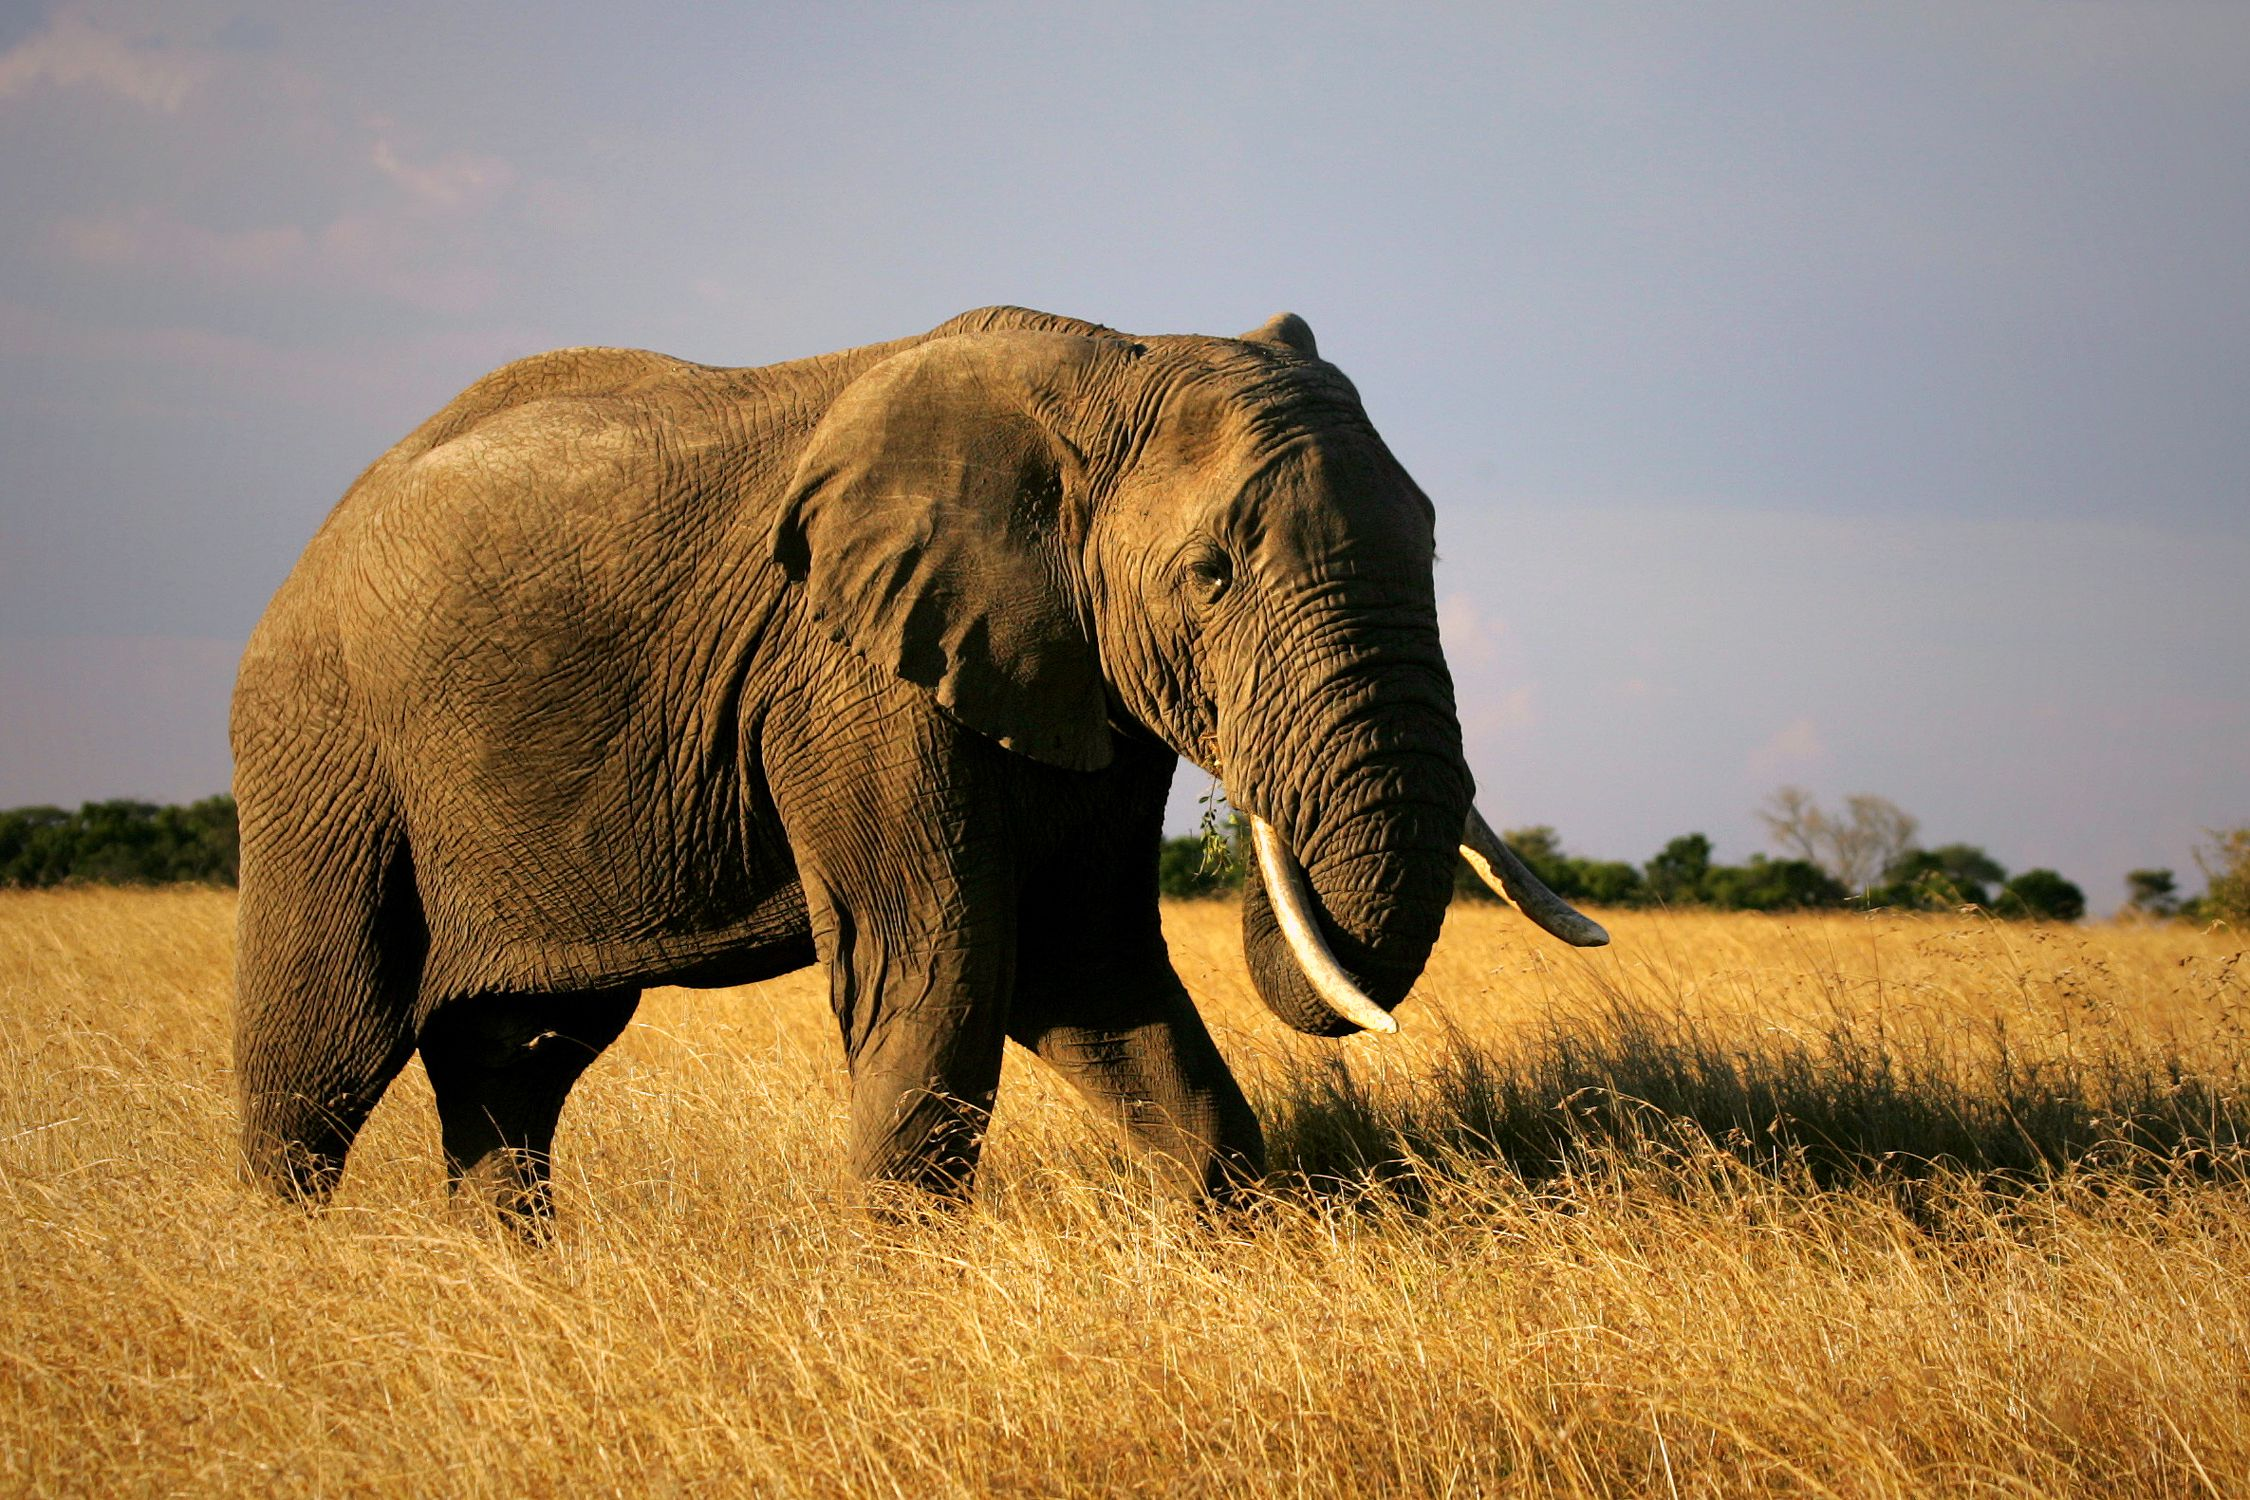 an analysis of the african elephant species loxodonta africana Conservation of endangered species and the effective implementation of the  endangered species act  cyclotis) and savannah elephants (loxodonta  africana)  table 5: african elephant database 2012 summary.